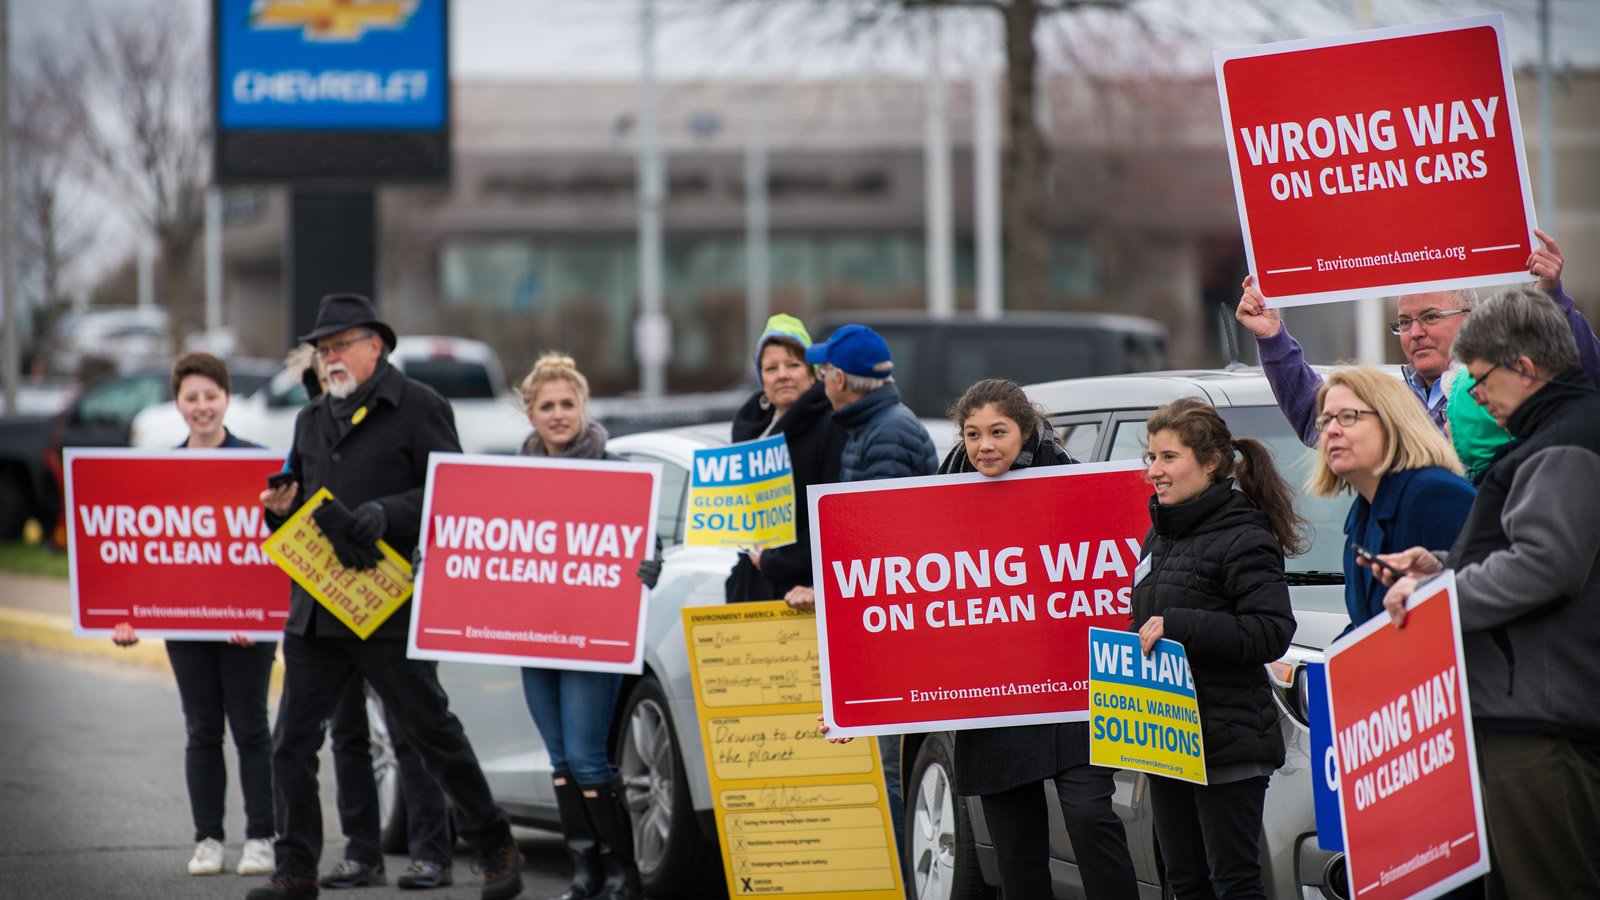 <h4>ACTING LOCALLY</h4><h5>Our leaders in Washington, D.C., are going the wrong way on this issue. We're calling on states and communities to pave the way for electric cars.</h5><em>TJ O'Neill, TJO Photography</em>